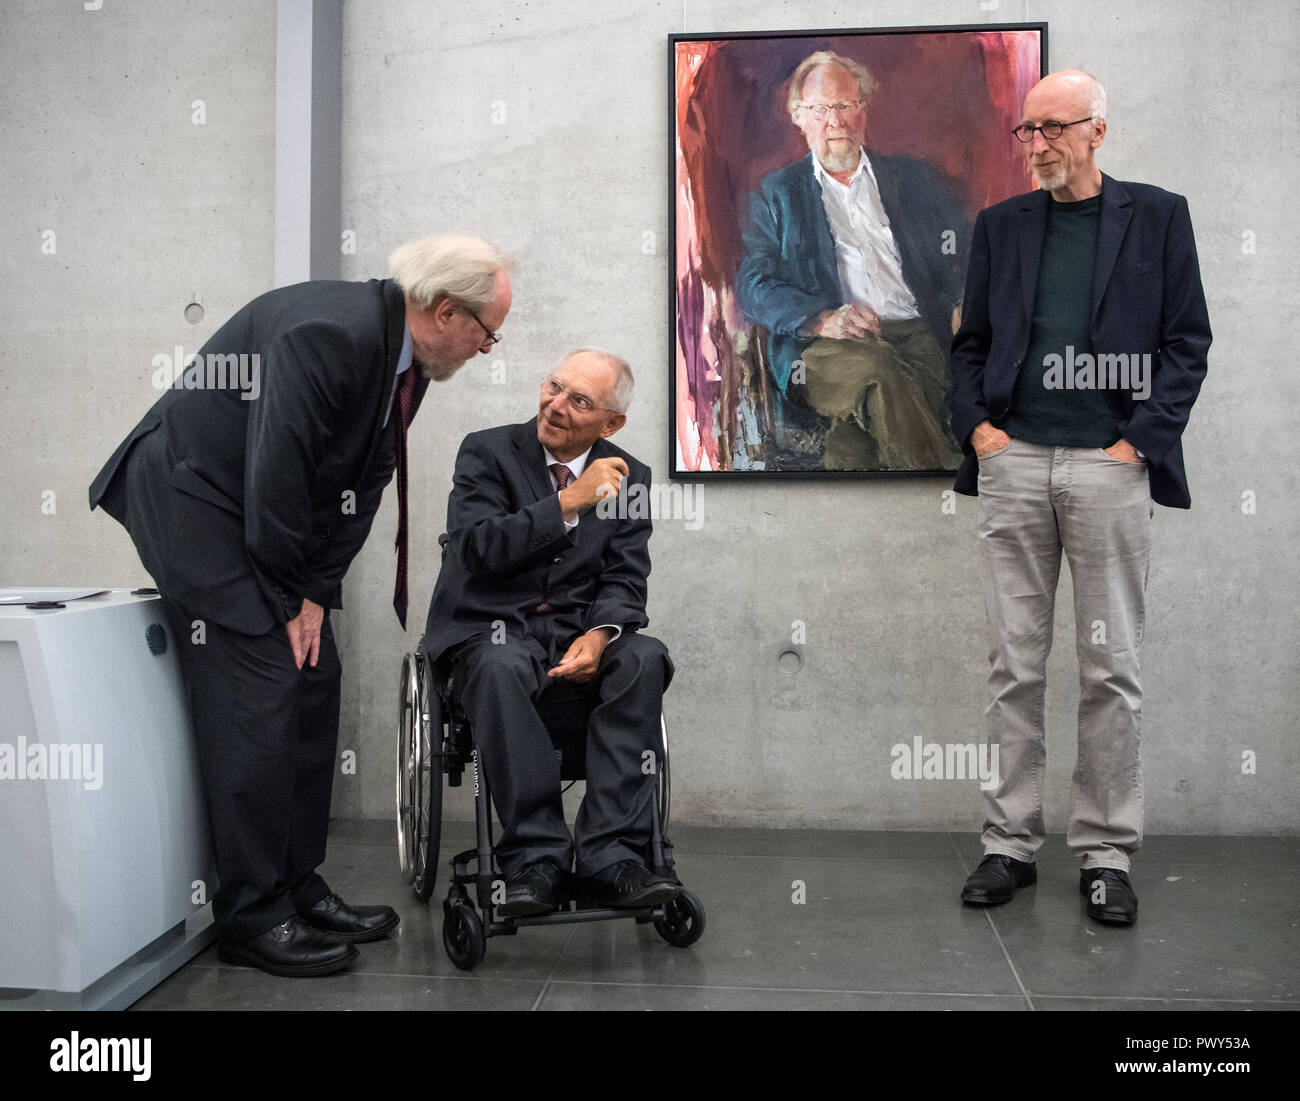 Berlin, Germany. 18th Oct, 2018. Former President of the Bundestag Wolfgang Thierse (l-r, SPD), President of the Bundestag Wolfgang Schäuble (CDU) and the artist Johannes Heisig are standing in the Gallery of Presidents of the Bundestag in the Paul-Löbe-Haus on the occasion of the inauguration of the Thierse portrait. Credit: Bernd von Jutrczenka/dpa/Alamy Live News - Stock Image